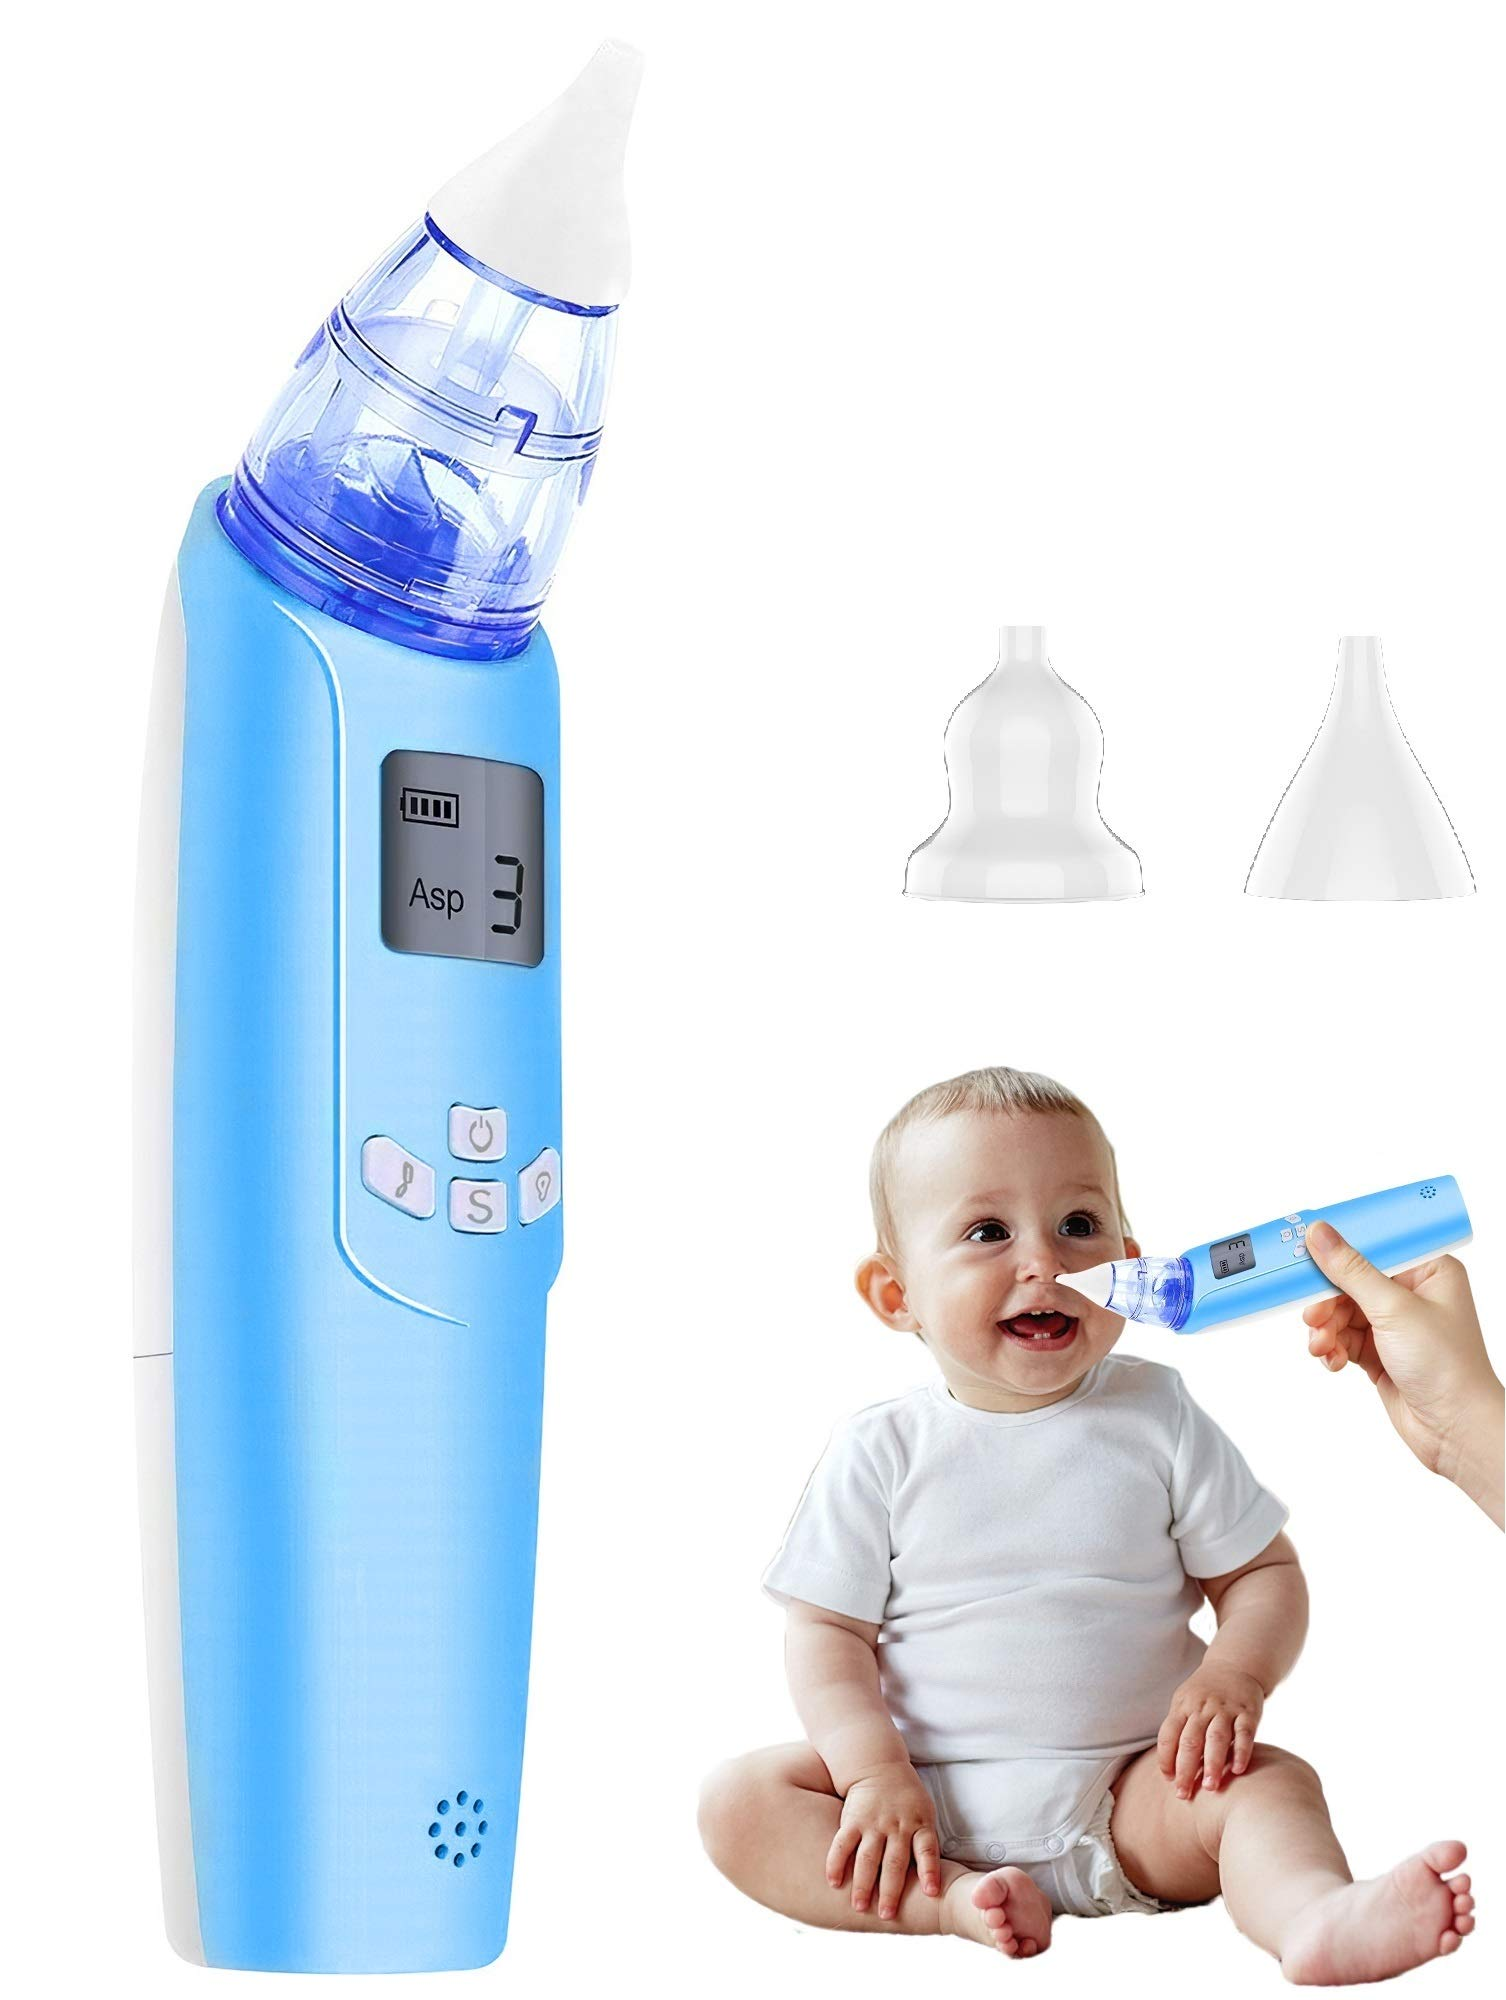 Baby Nasal Aspirator - Electric Nose Suction for Baby - Automatic Booger Sucker for Infants - Battery Powered Snot Sucker Mucus Remover for Kids Toddlers by Watolt